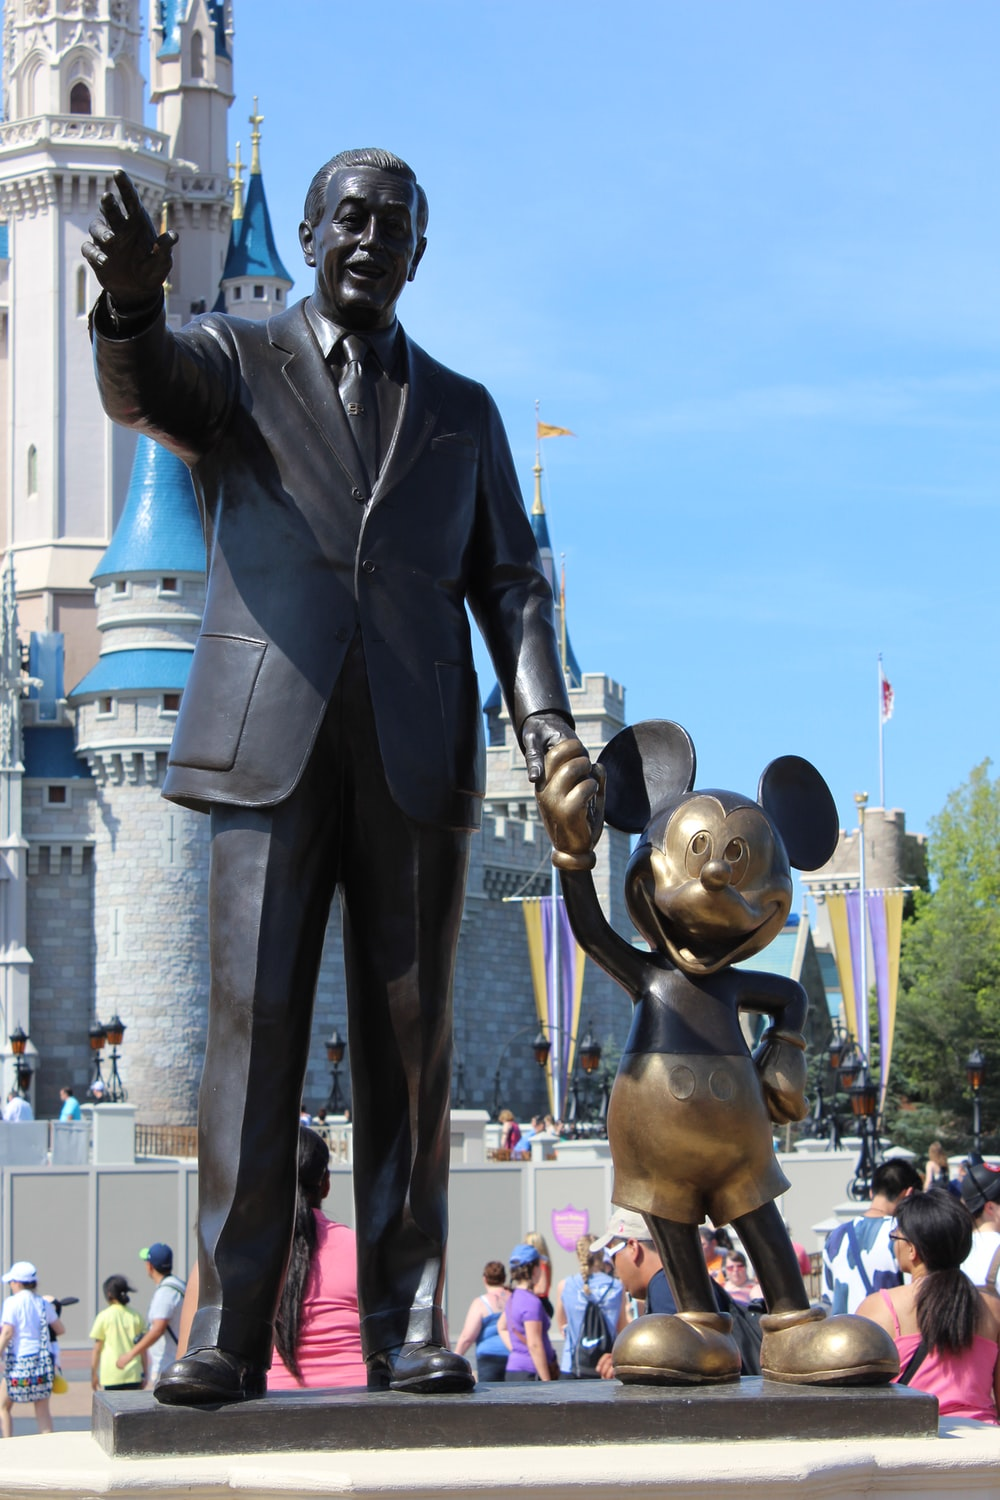 man in black suit standing beside man statue during daytime